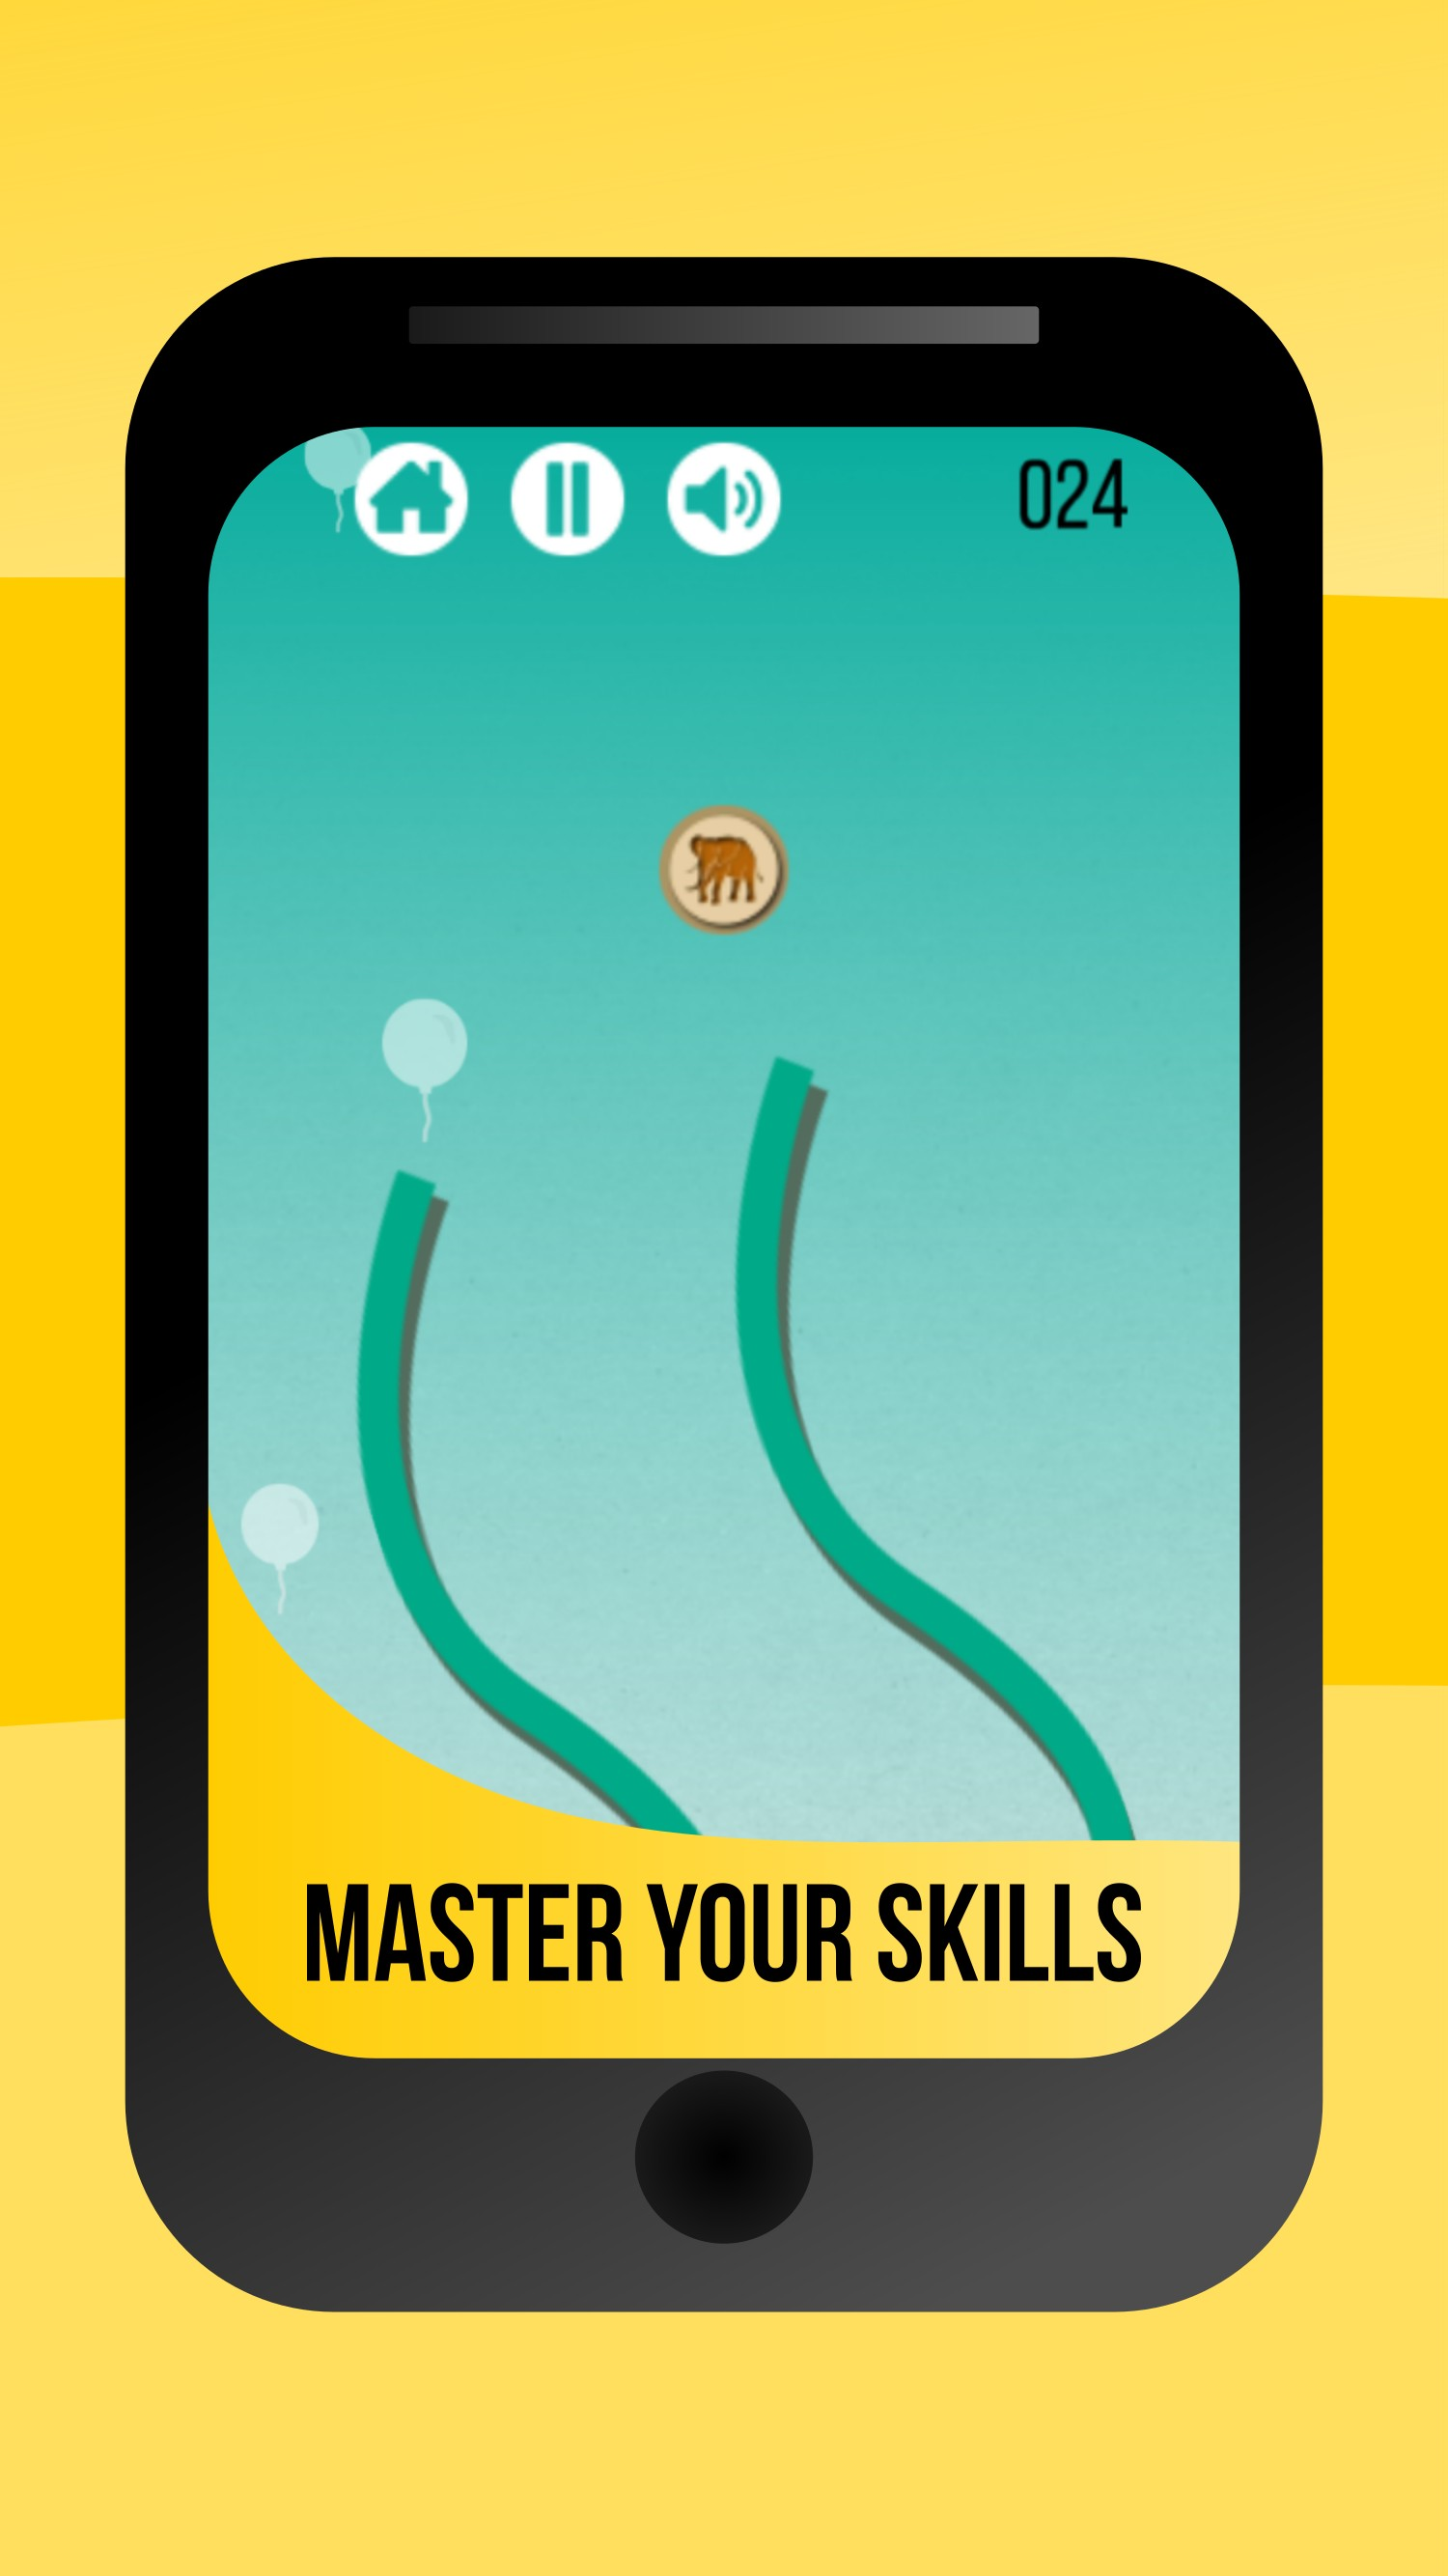 Fallin (free) - Addictive, Falling down, Endless Puzzle Game